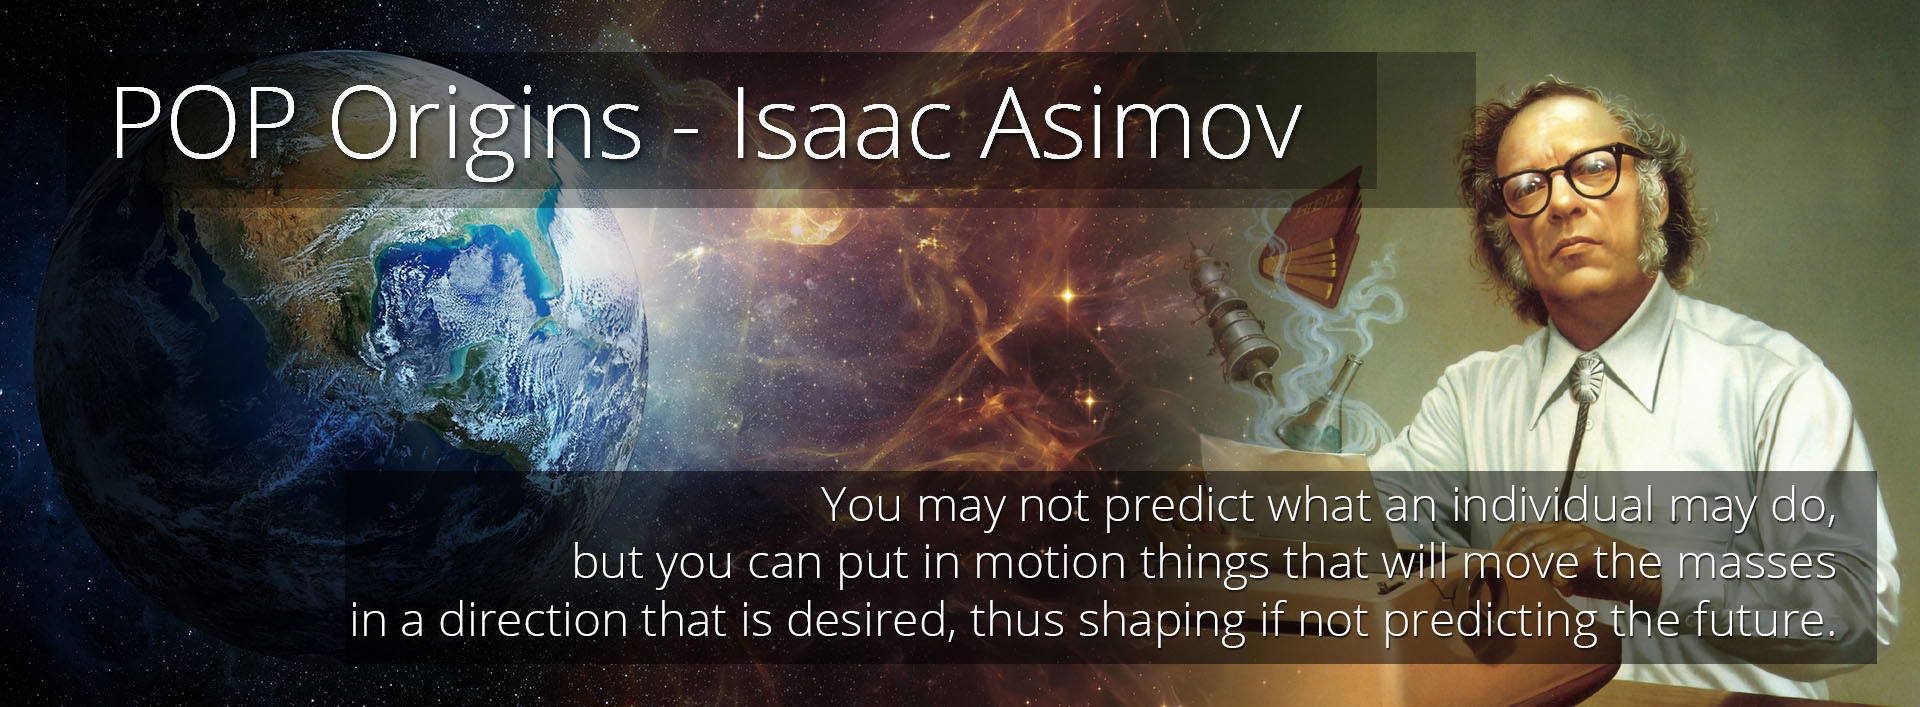 pop origins - isaac asimov - an economic theory of everything